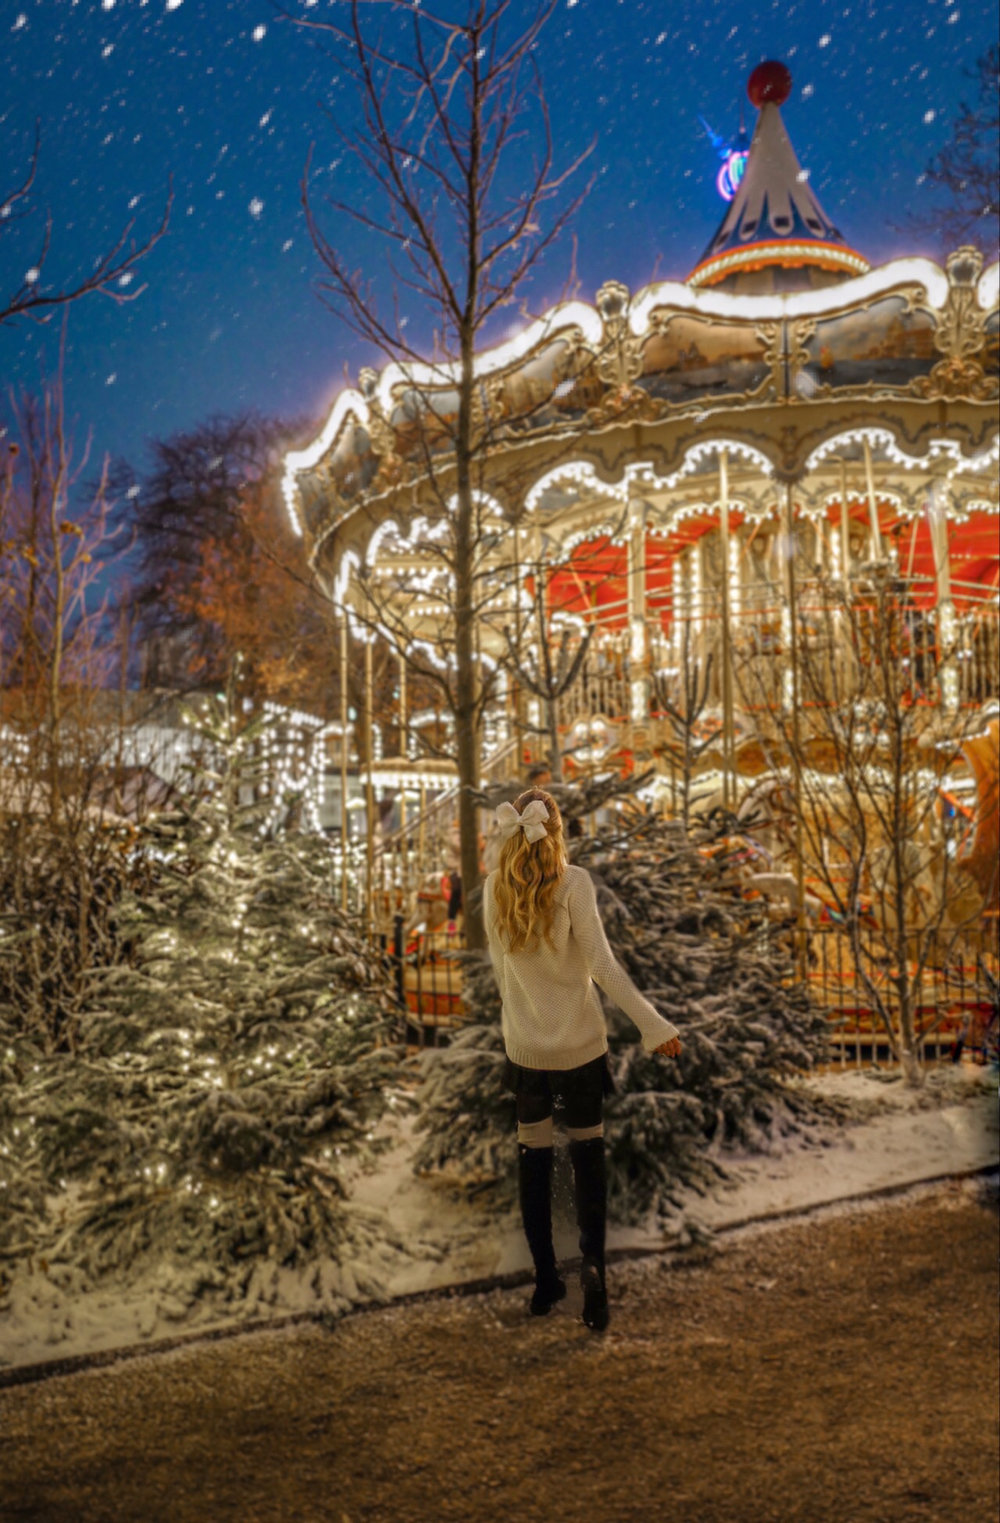 At the beautiful Tivoli Gardens.